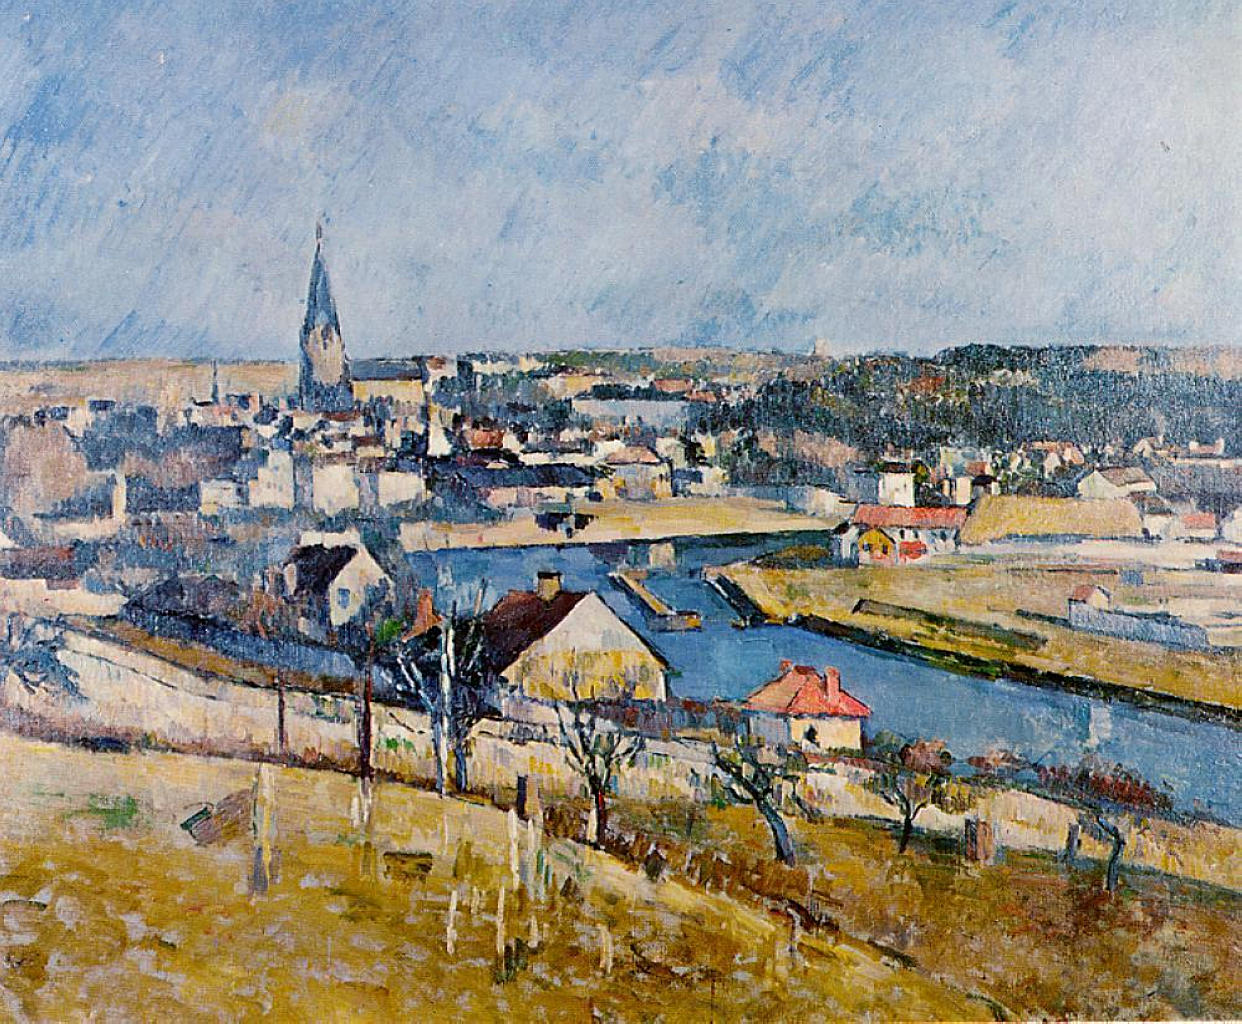 ile de france landscape 1880 paul cezanne. Black Bedroom Furniture Sets. Home Design Ideas